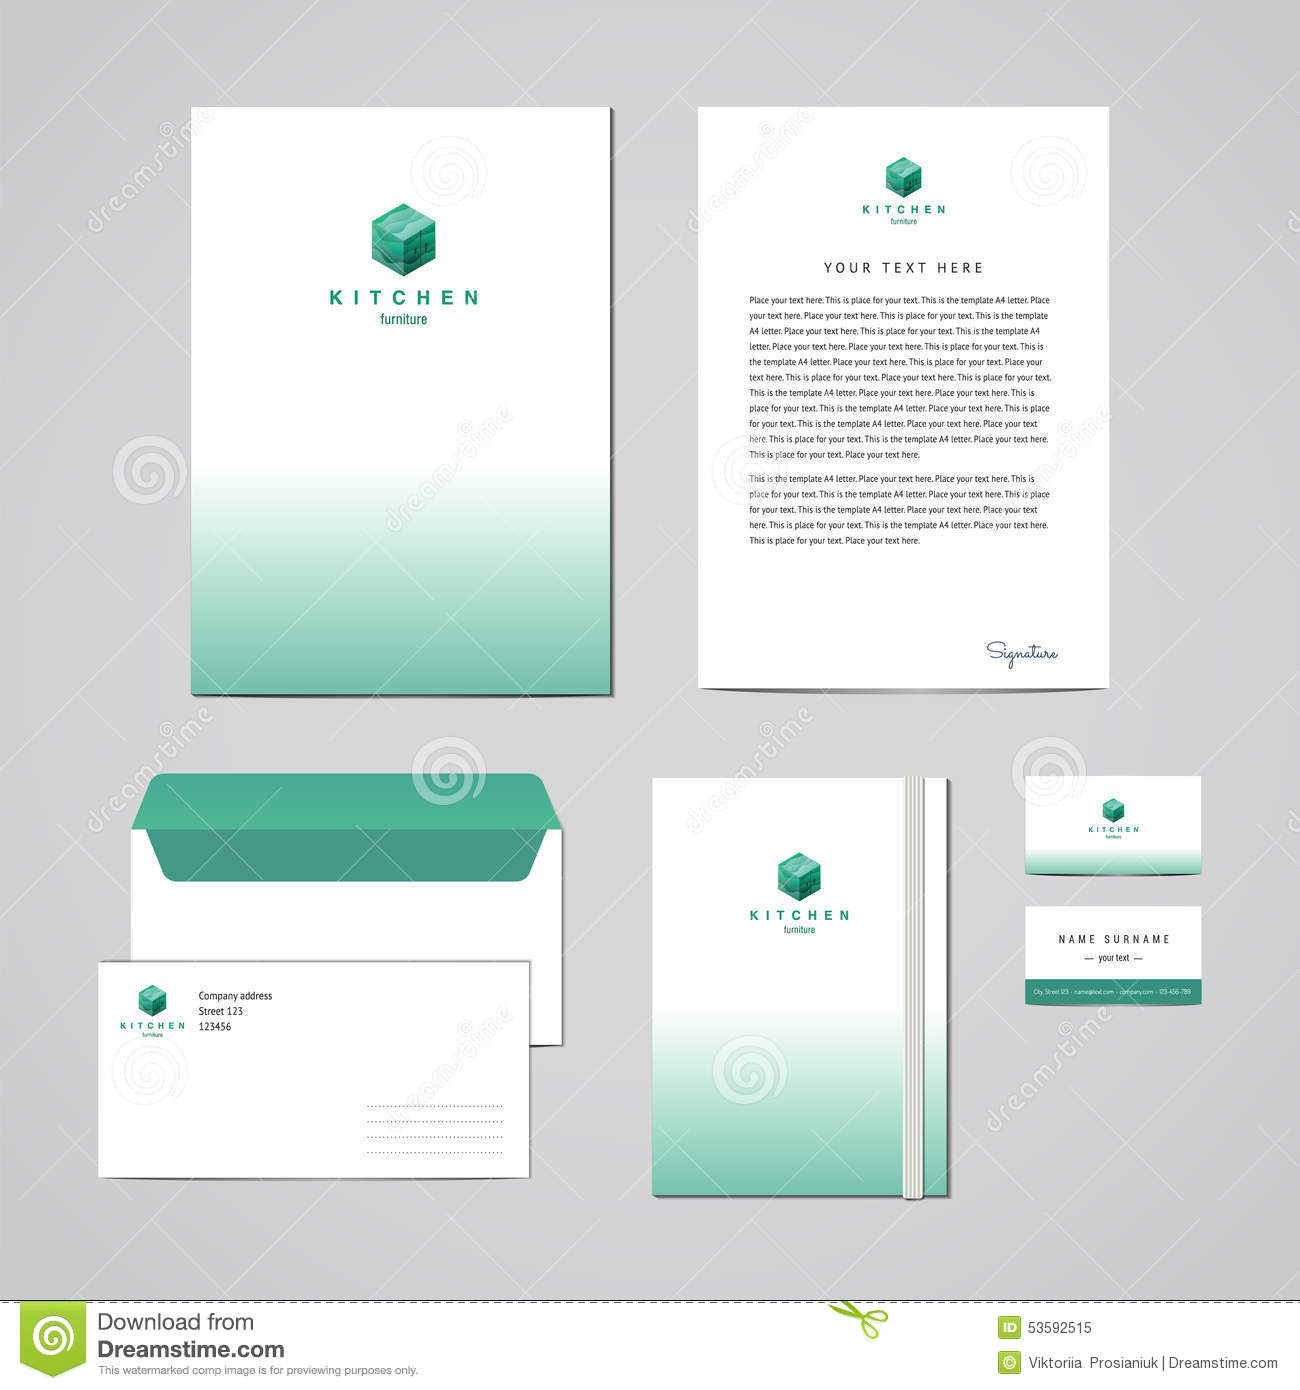 Corporate Identity Furniture Company Turquoise Design